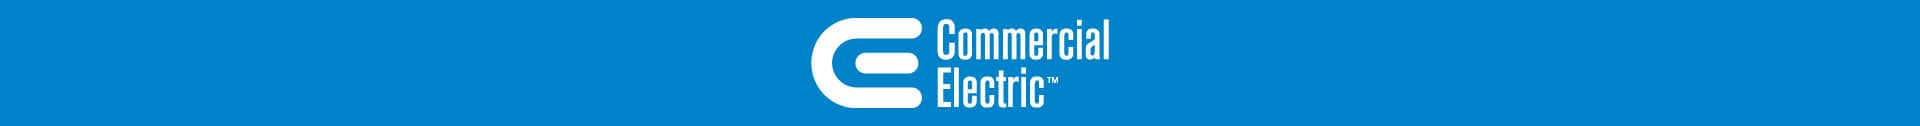 Commercial Electric Brand Banner